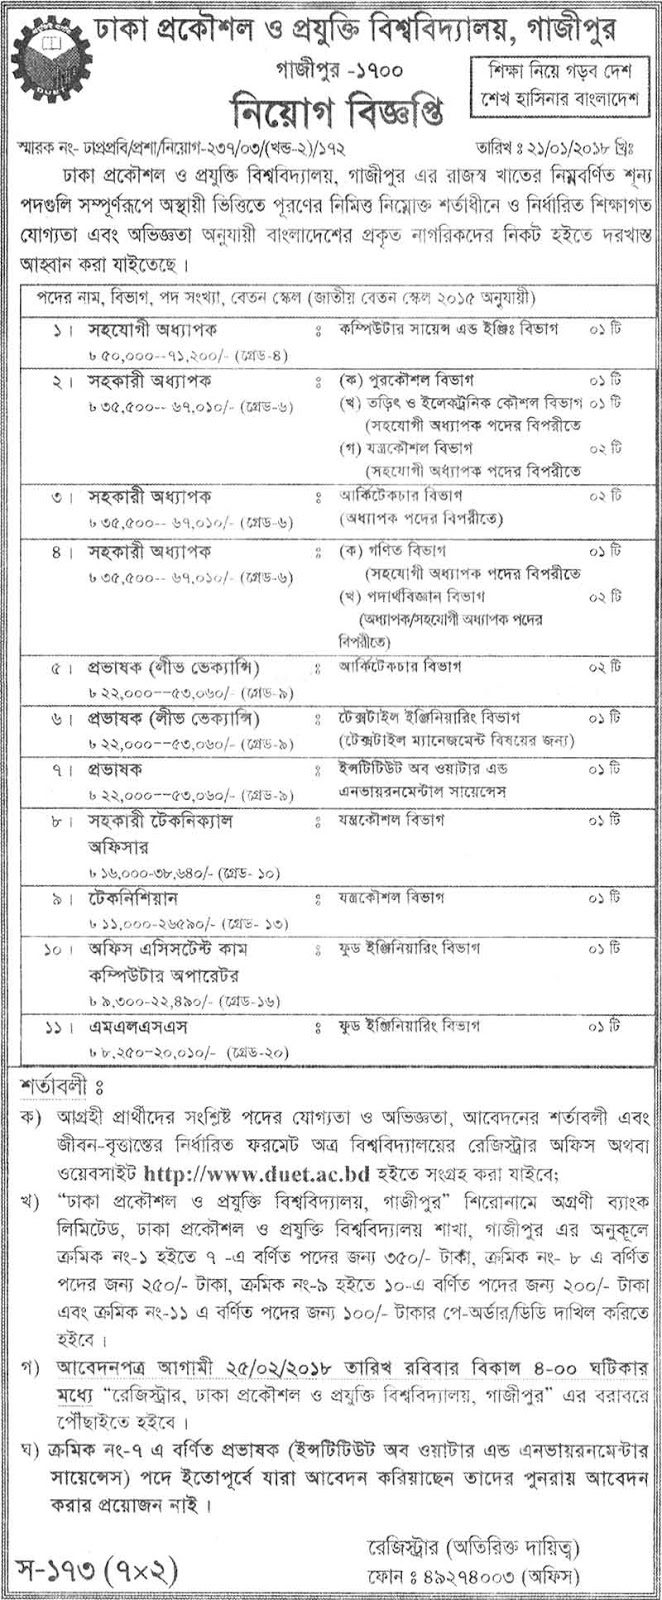 DUET Professor and Lecturer Recruitment Circular 2018